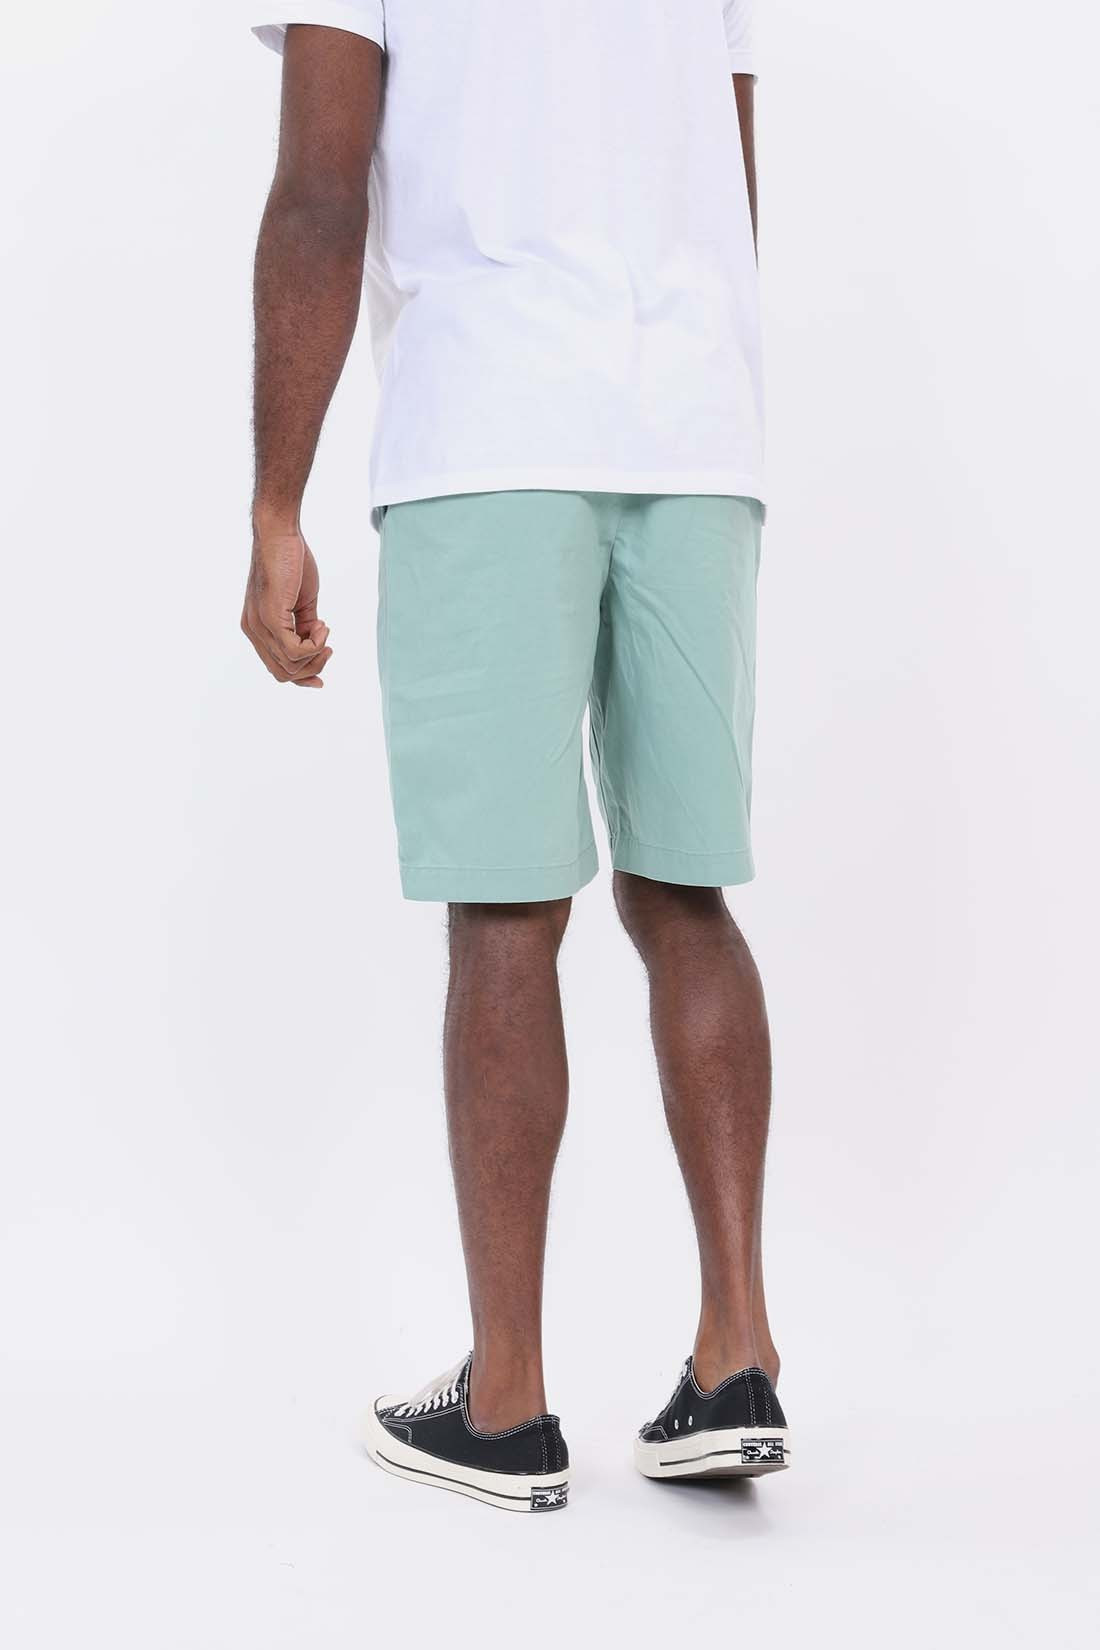 POLO RALPH LAUREN / Chino relaxed fit short Mint